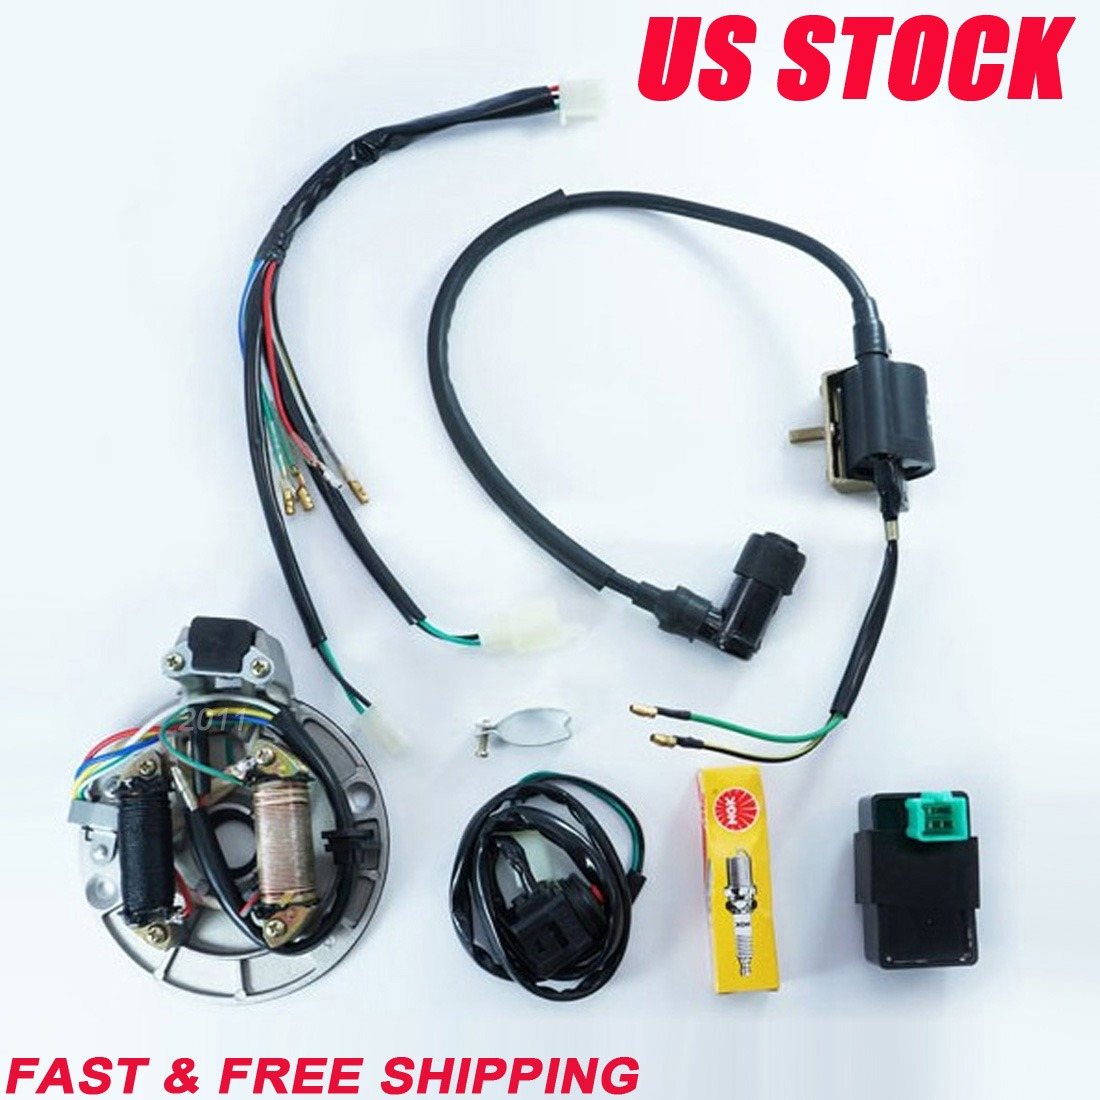 125cc Pit Bike Kick Start Wiring Diagram Libraries Kawasaki Librarytdpro 50cc 110cc Motorcycle Cdi Coil Stator Magneto Plug